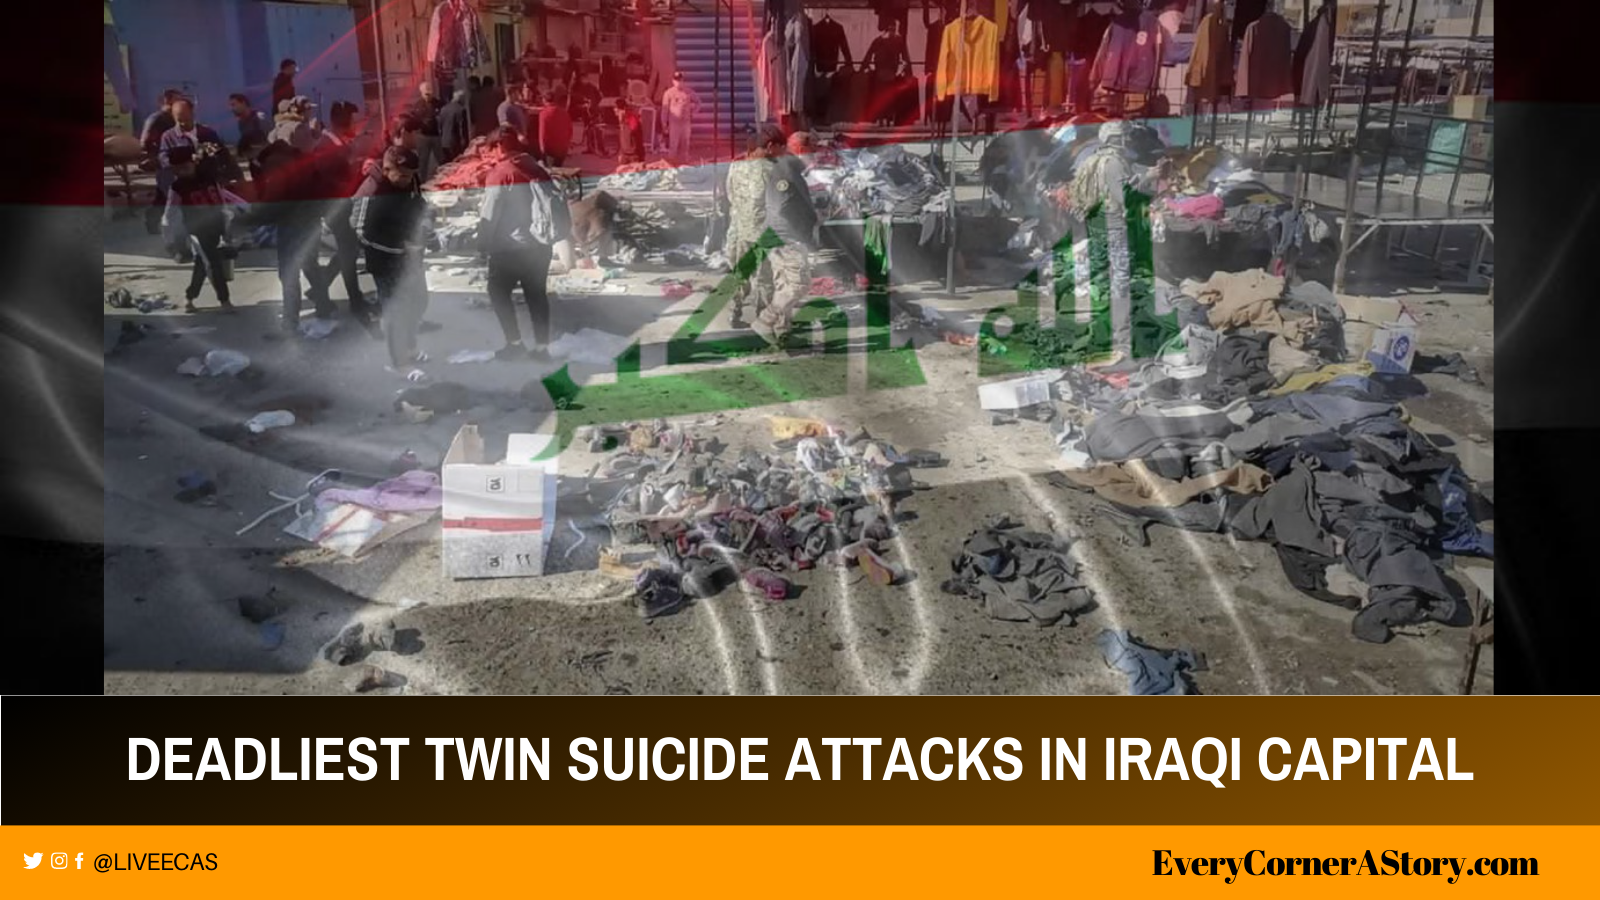 baghdad bombing suicide twin attack every corner a story dozens killed pope francis